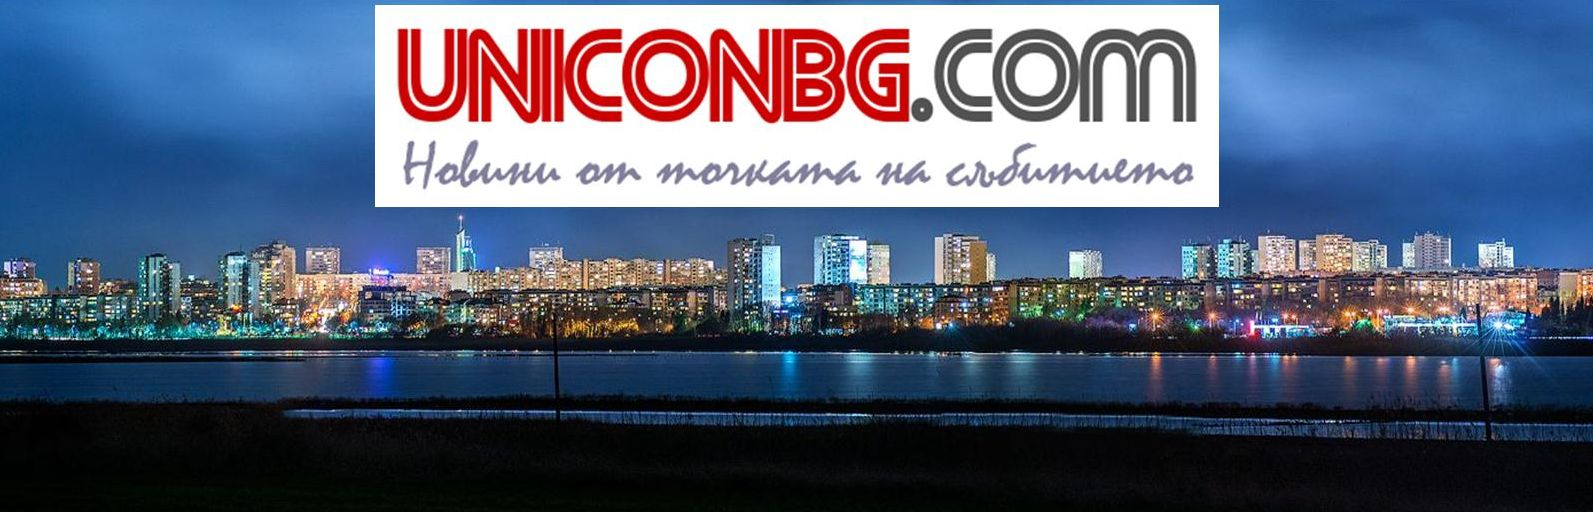 NEWS UNICONBG